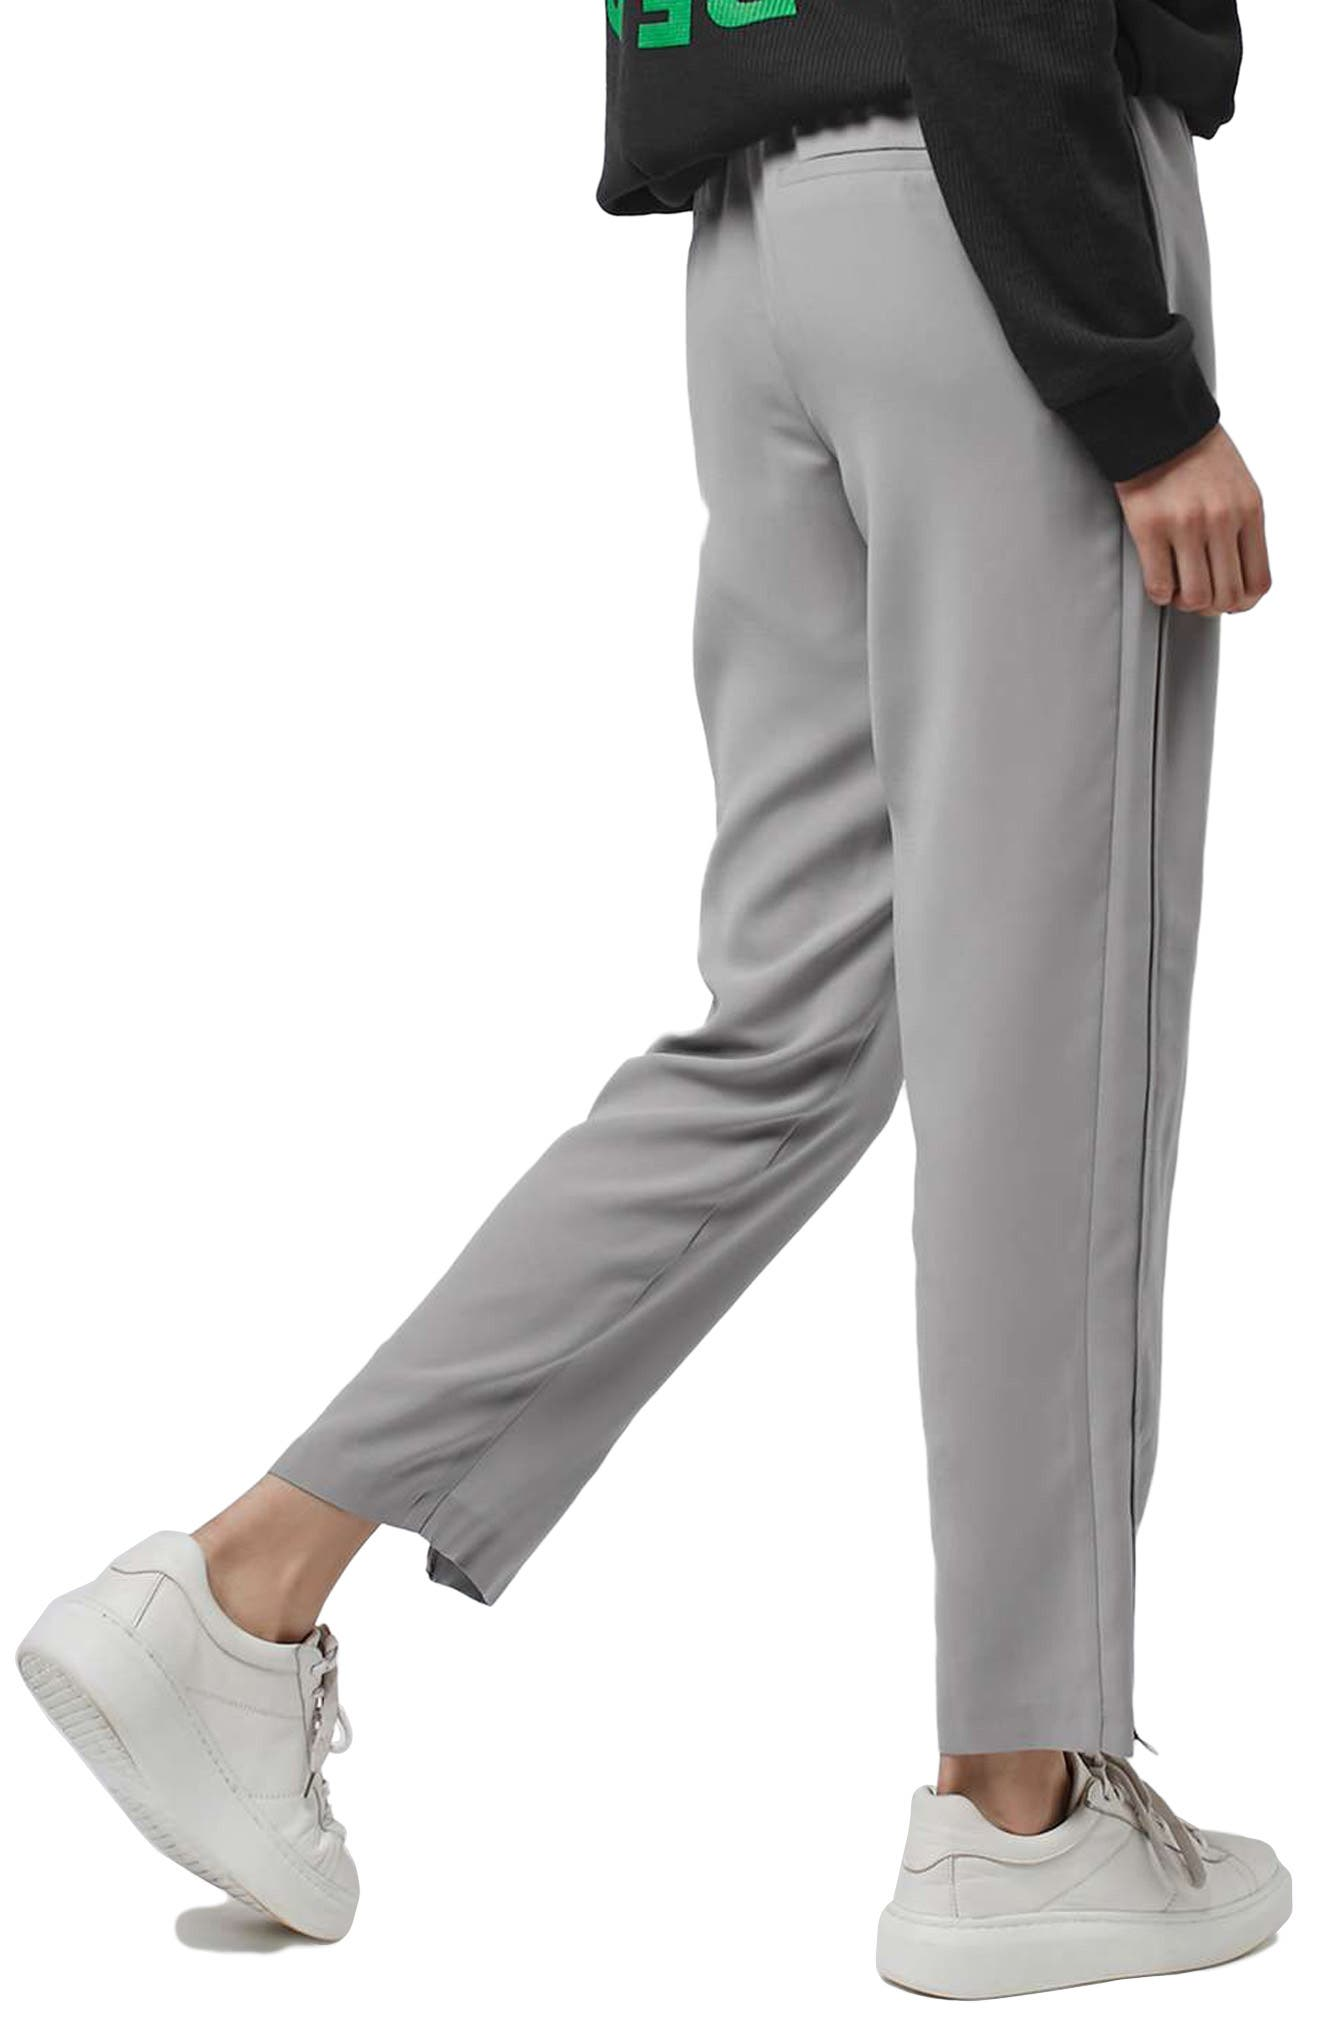 Contrast Piped Ankle Zip Jogger Pants,                             Alternate thumbnail 2, color,                             020